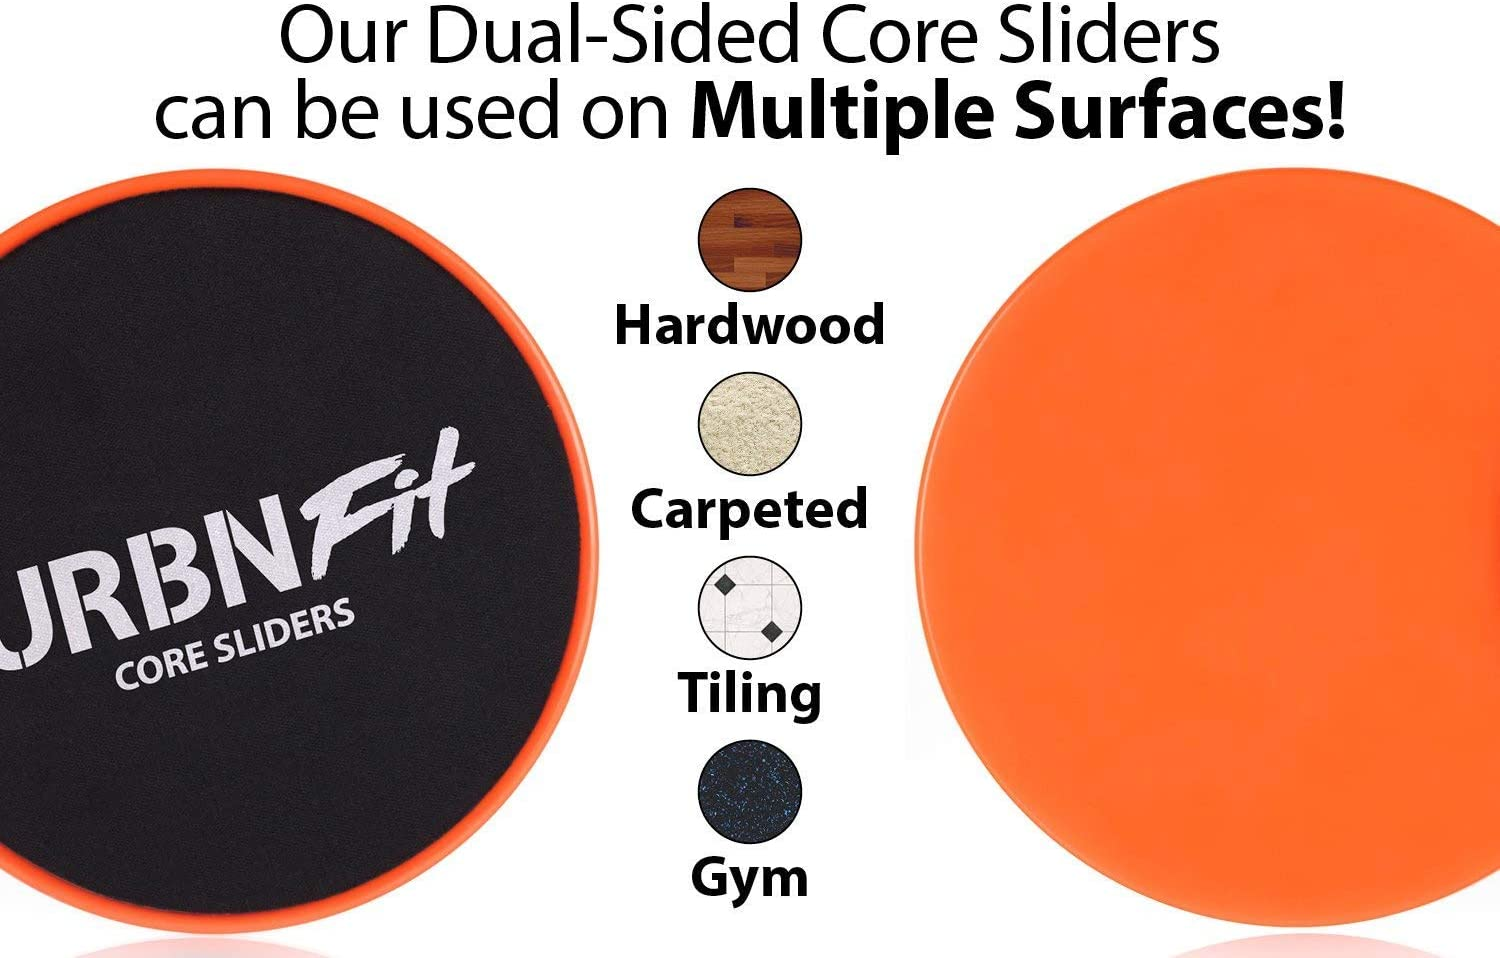 Arms Back Fitness Exercise Equipment Gliders for Workout Legs VECH 2 Pack Gliding Discs Core Sliders Abs at Home Dual Sided Exercise Disc for Smooth Sliding On Carpet and Hardwood Floors